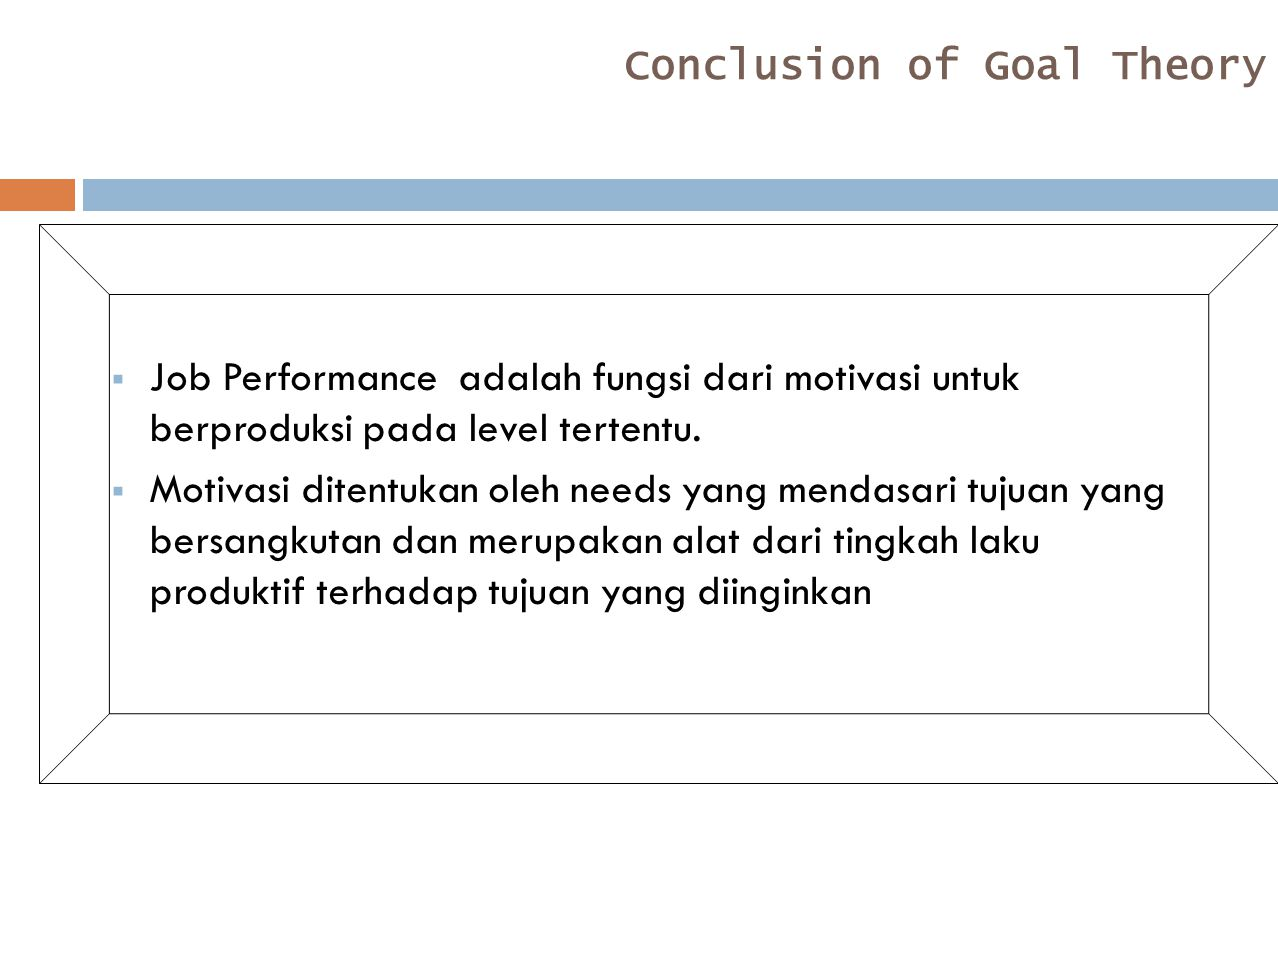 Conclusion of Goal Theory